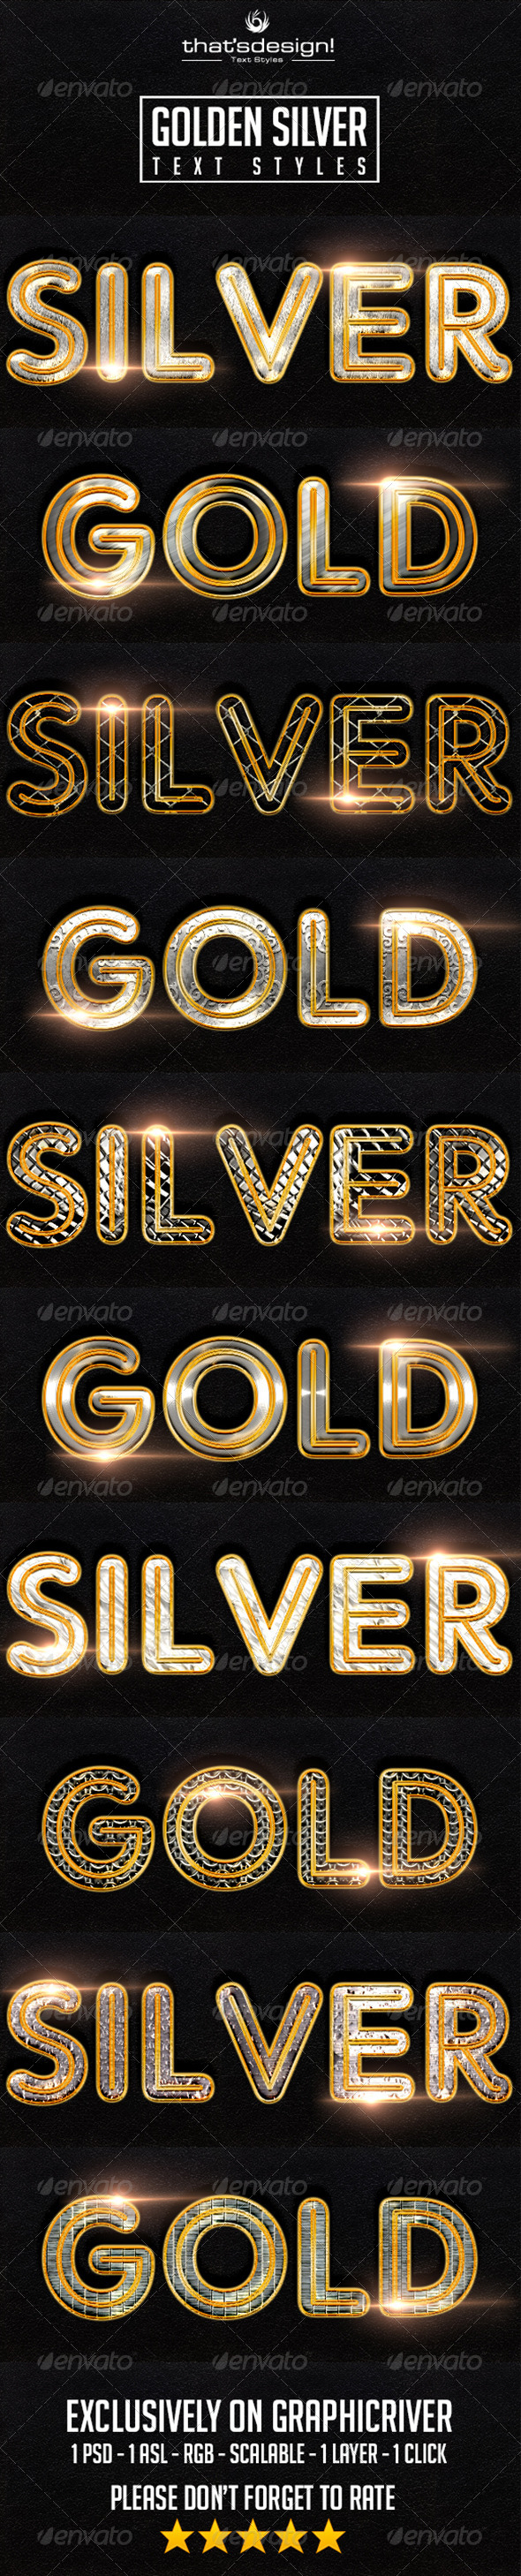 GraphicRiver 10 Golden Silver Text Styles 8368219